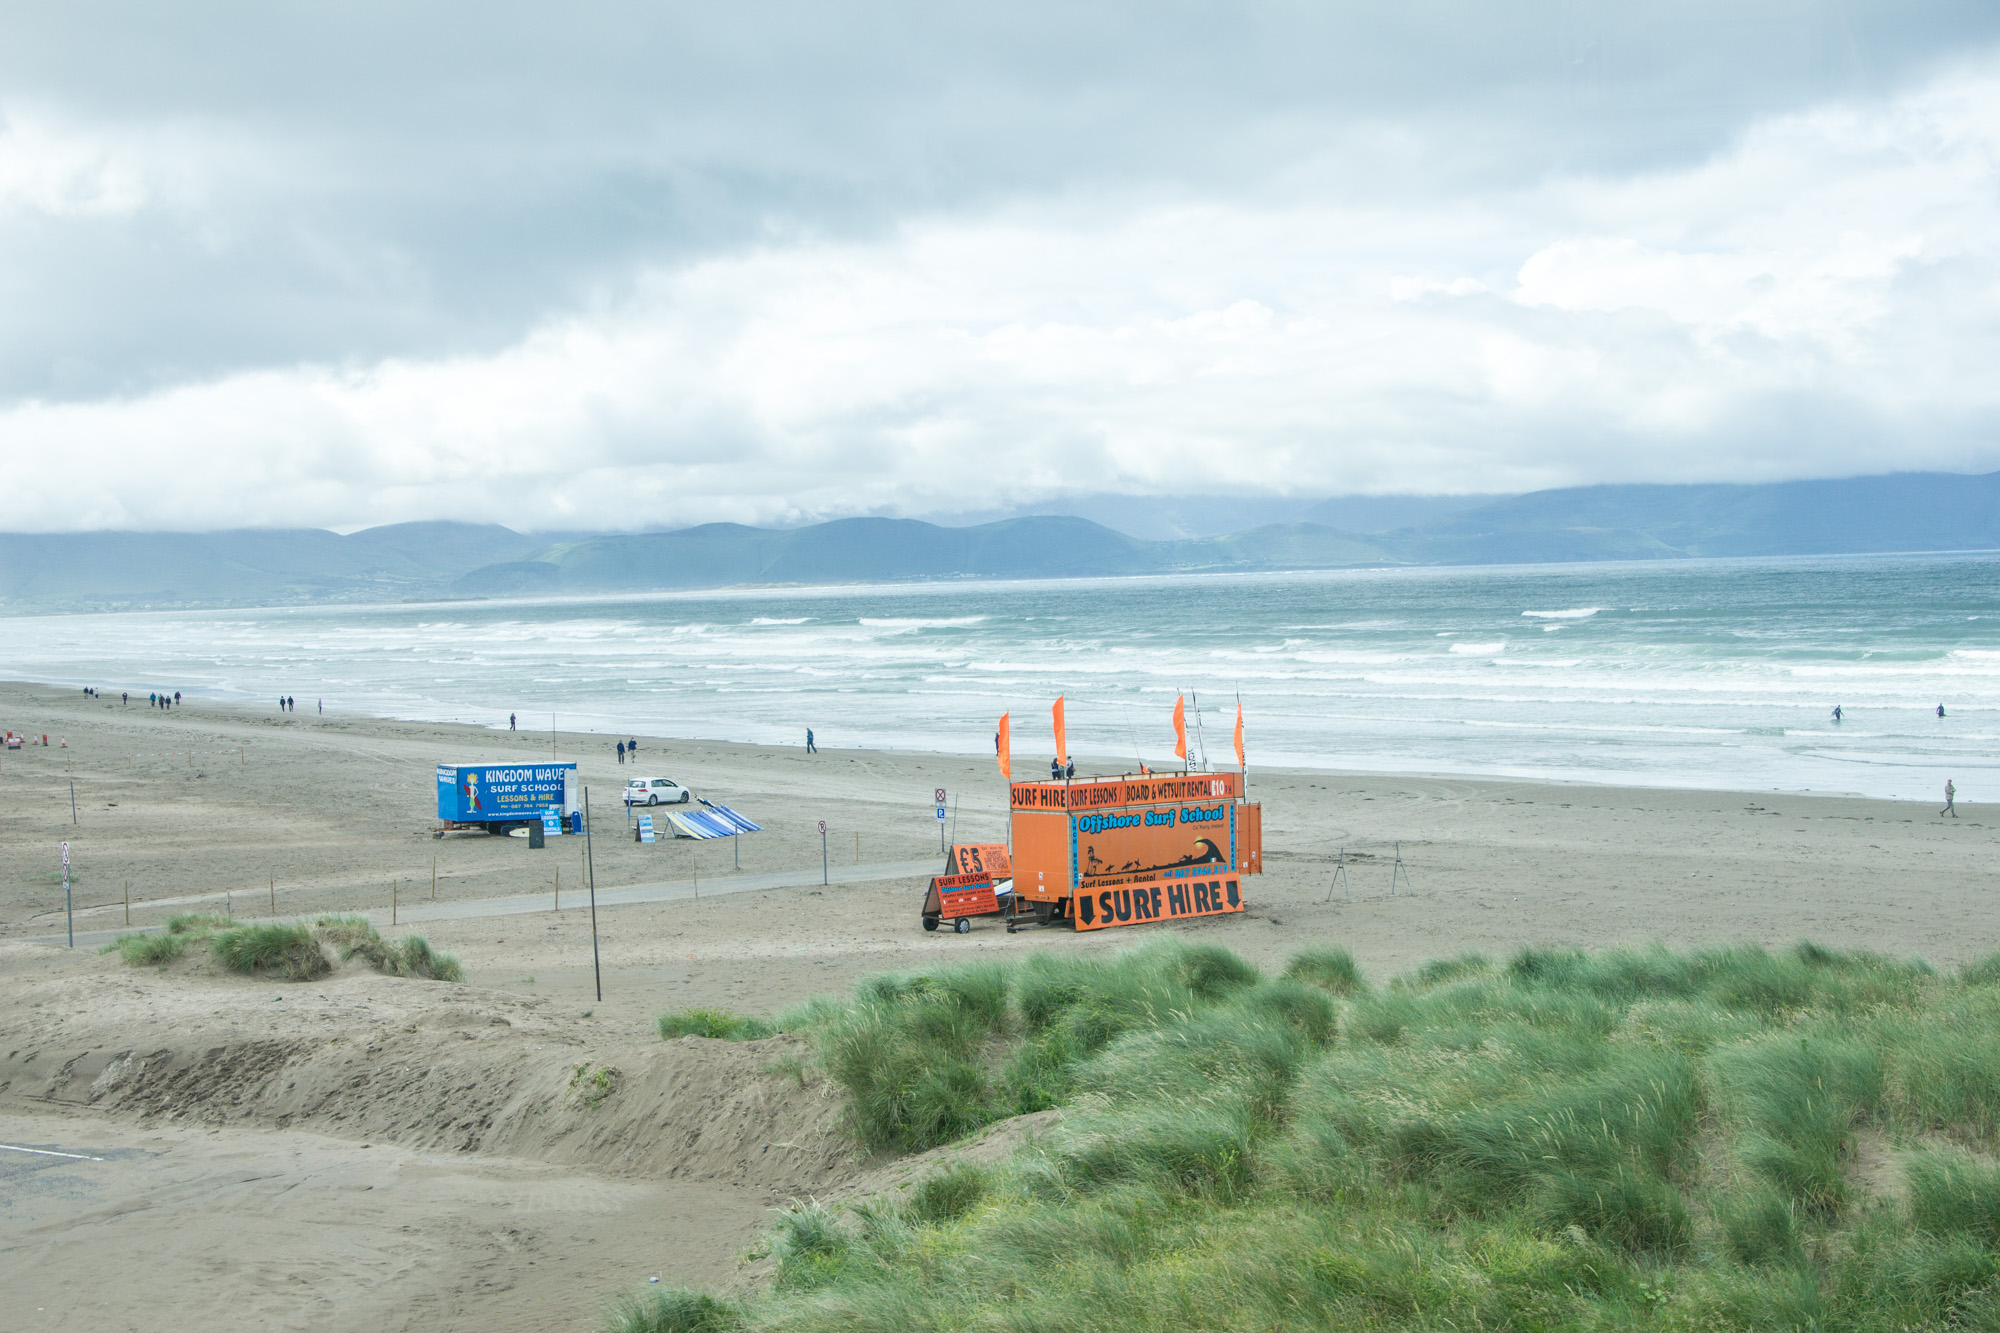 Beach in Dingle, Ireland with an orange truck on the shore